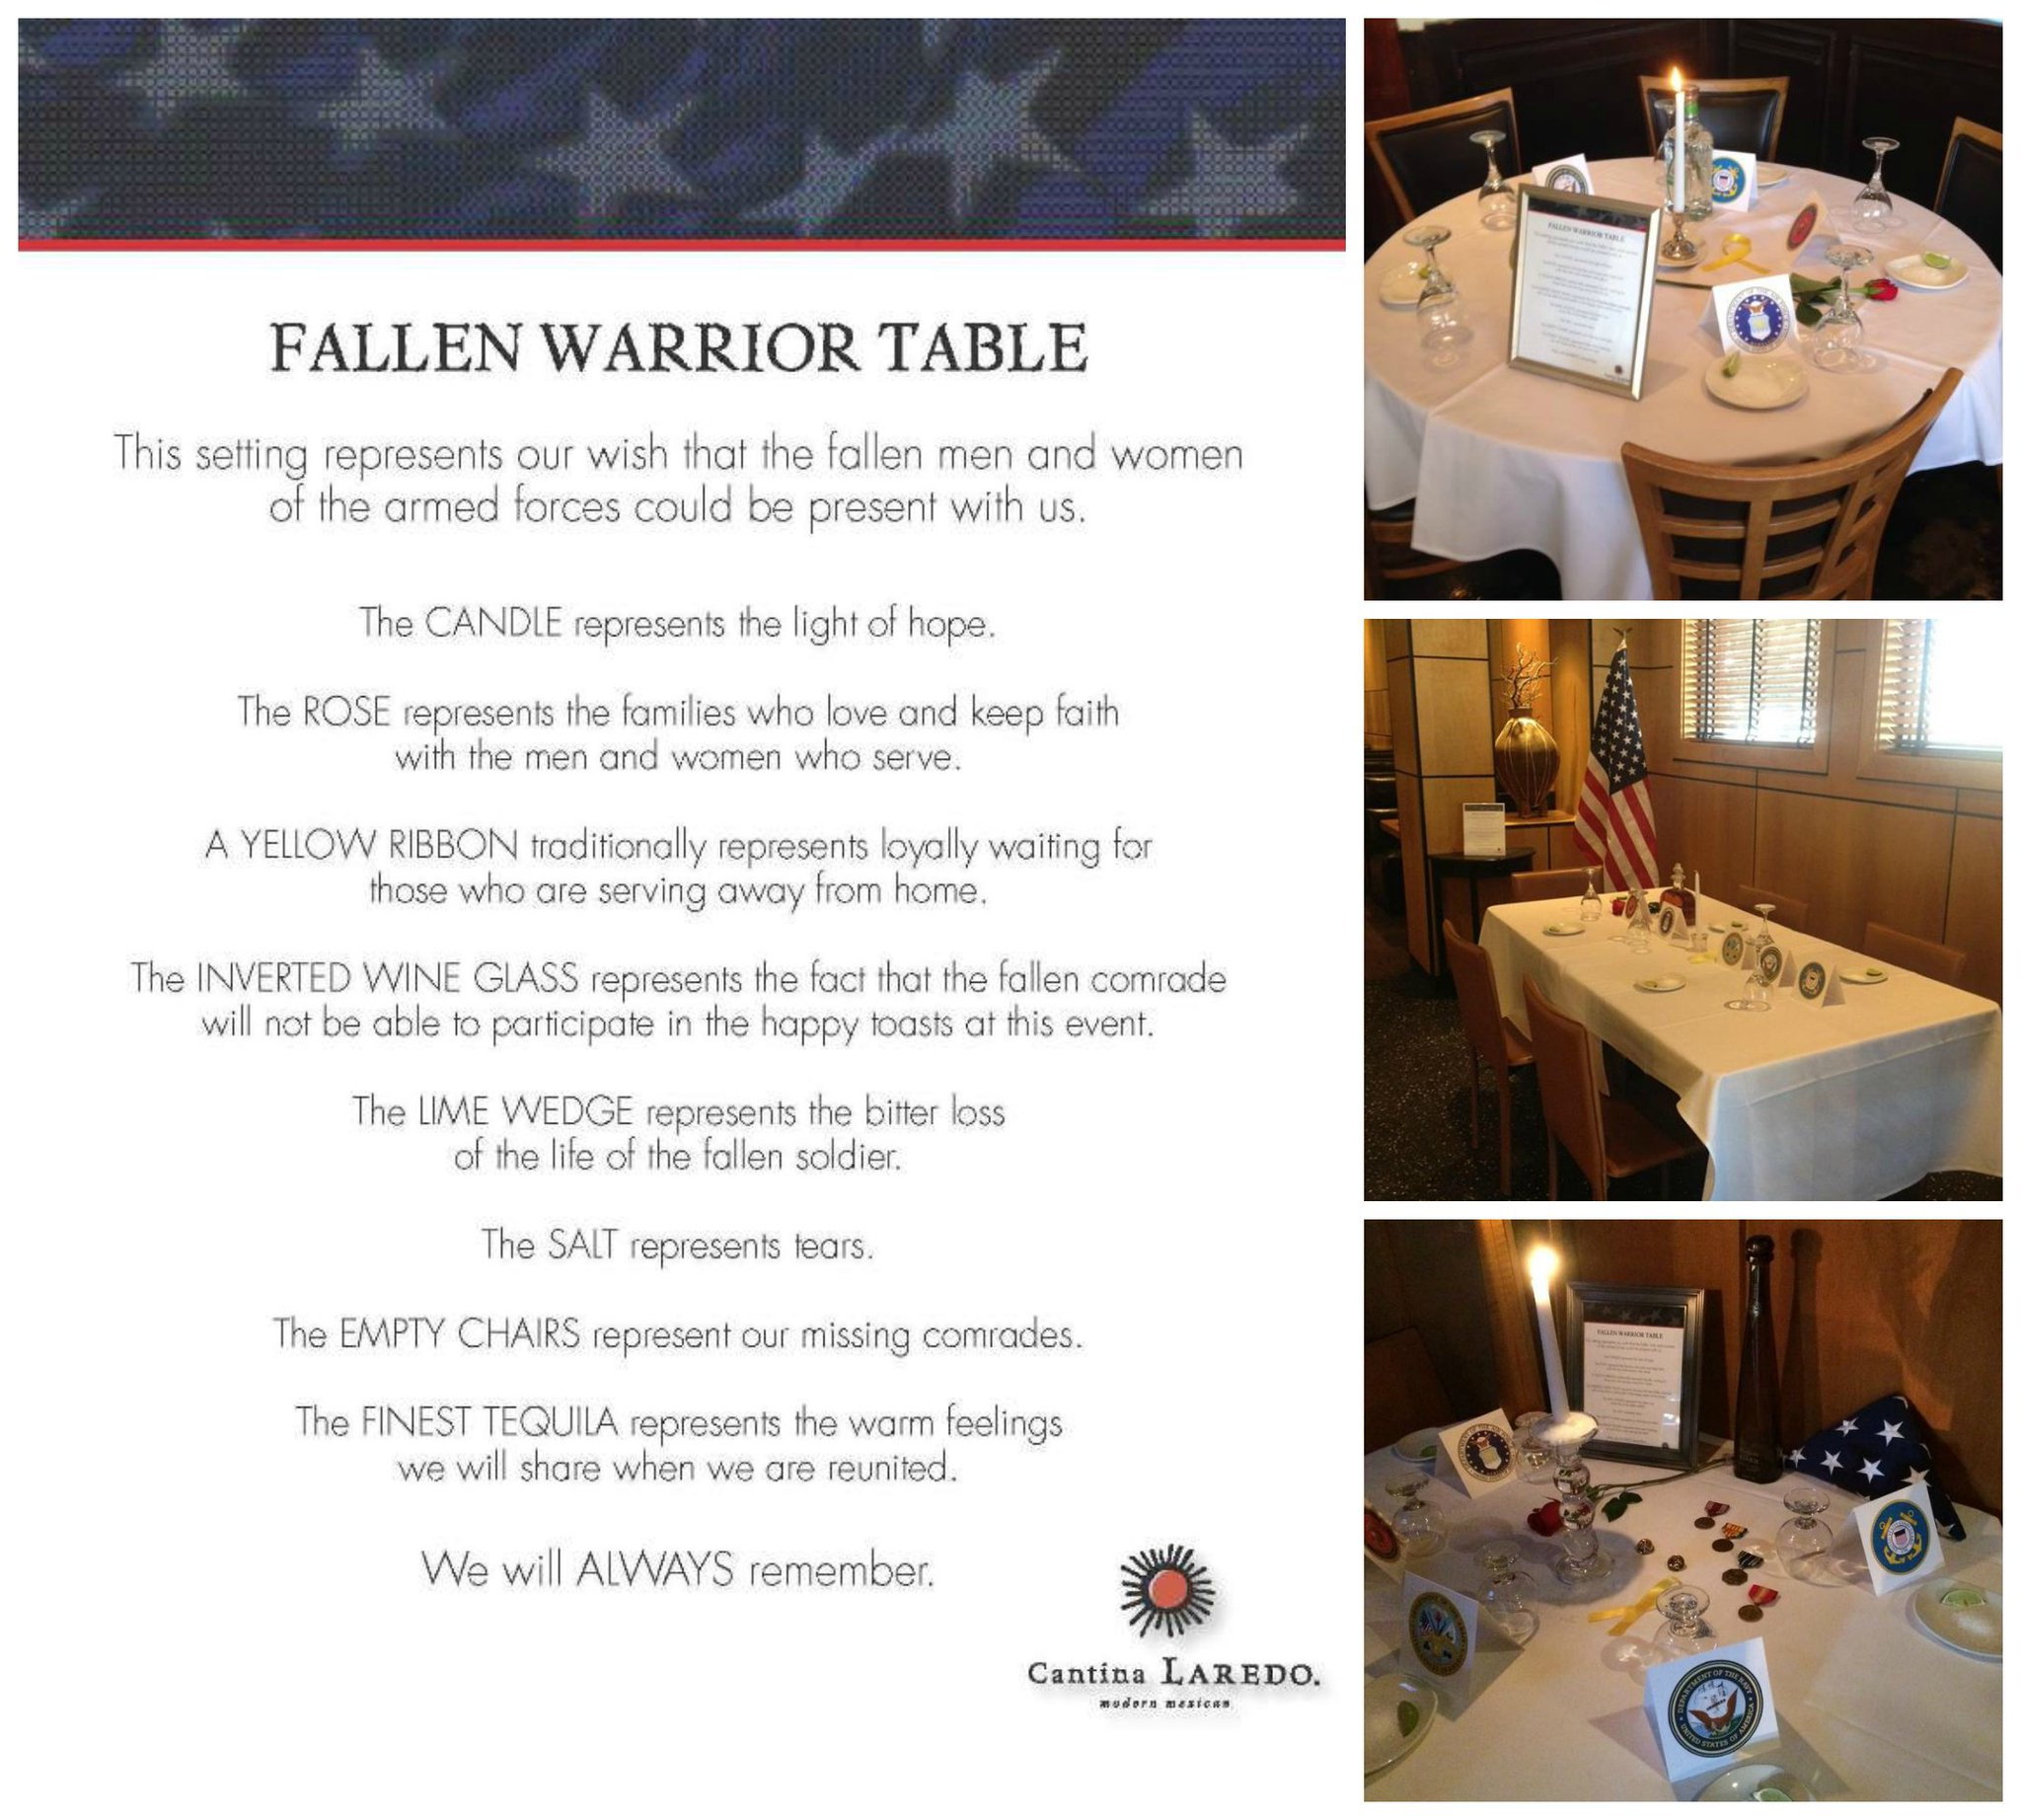 Epic image in fallen soldier table poem printable